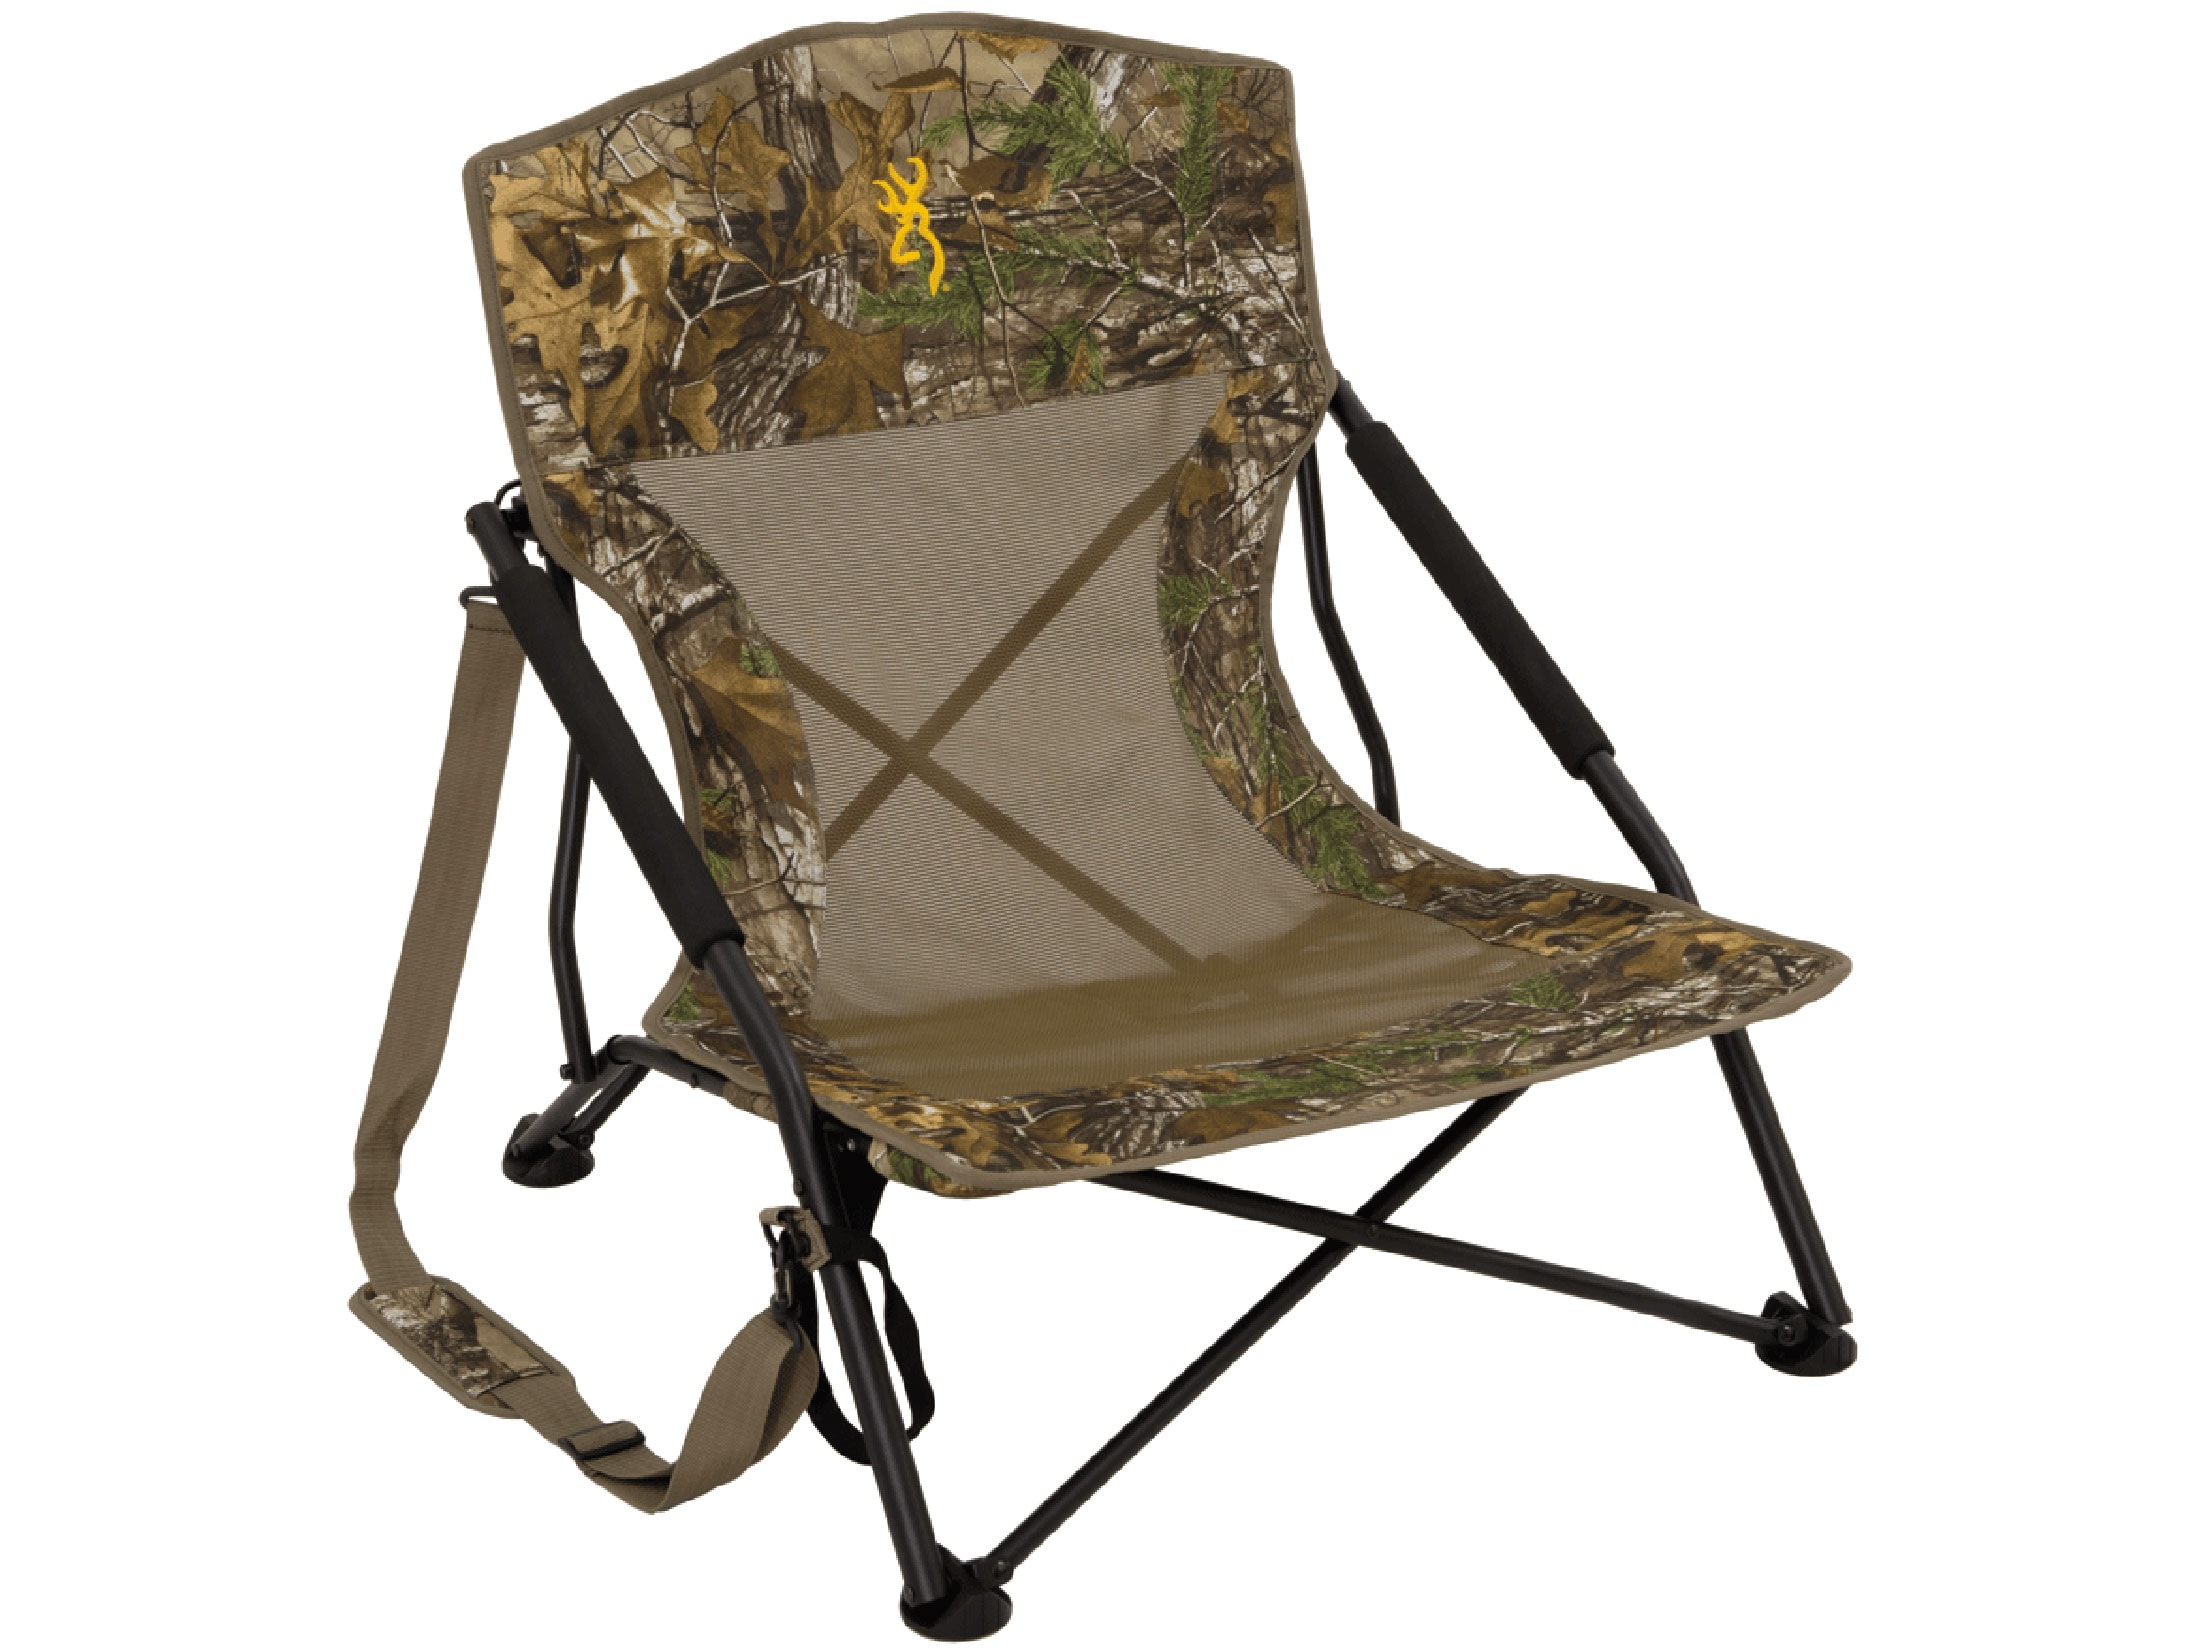 Awesome Browning Strutter Low Profile Chair Realtree Xtra Camo Unemploymentrelief Wooden Chair Designs For Living Room Unemploymentrelieforg